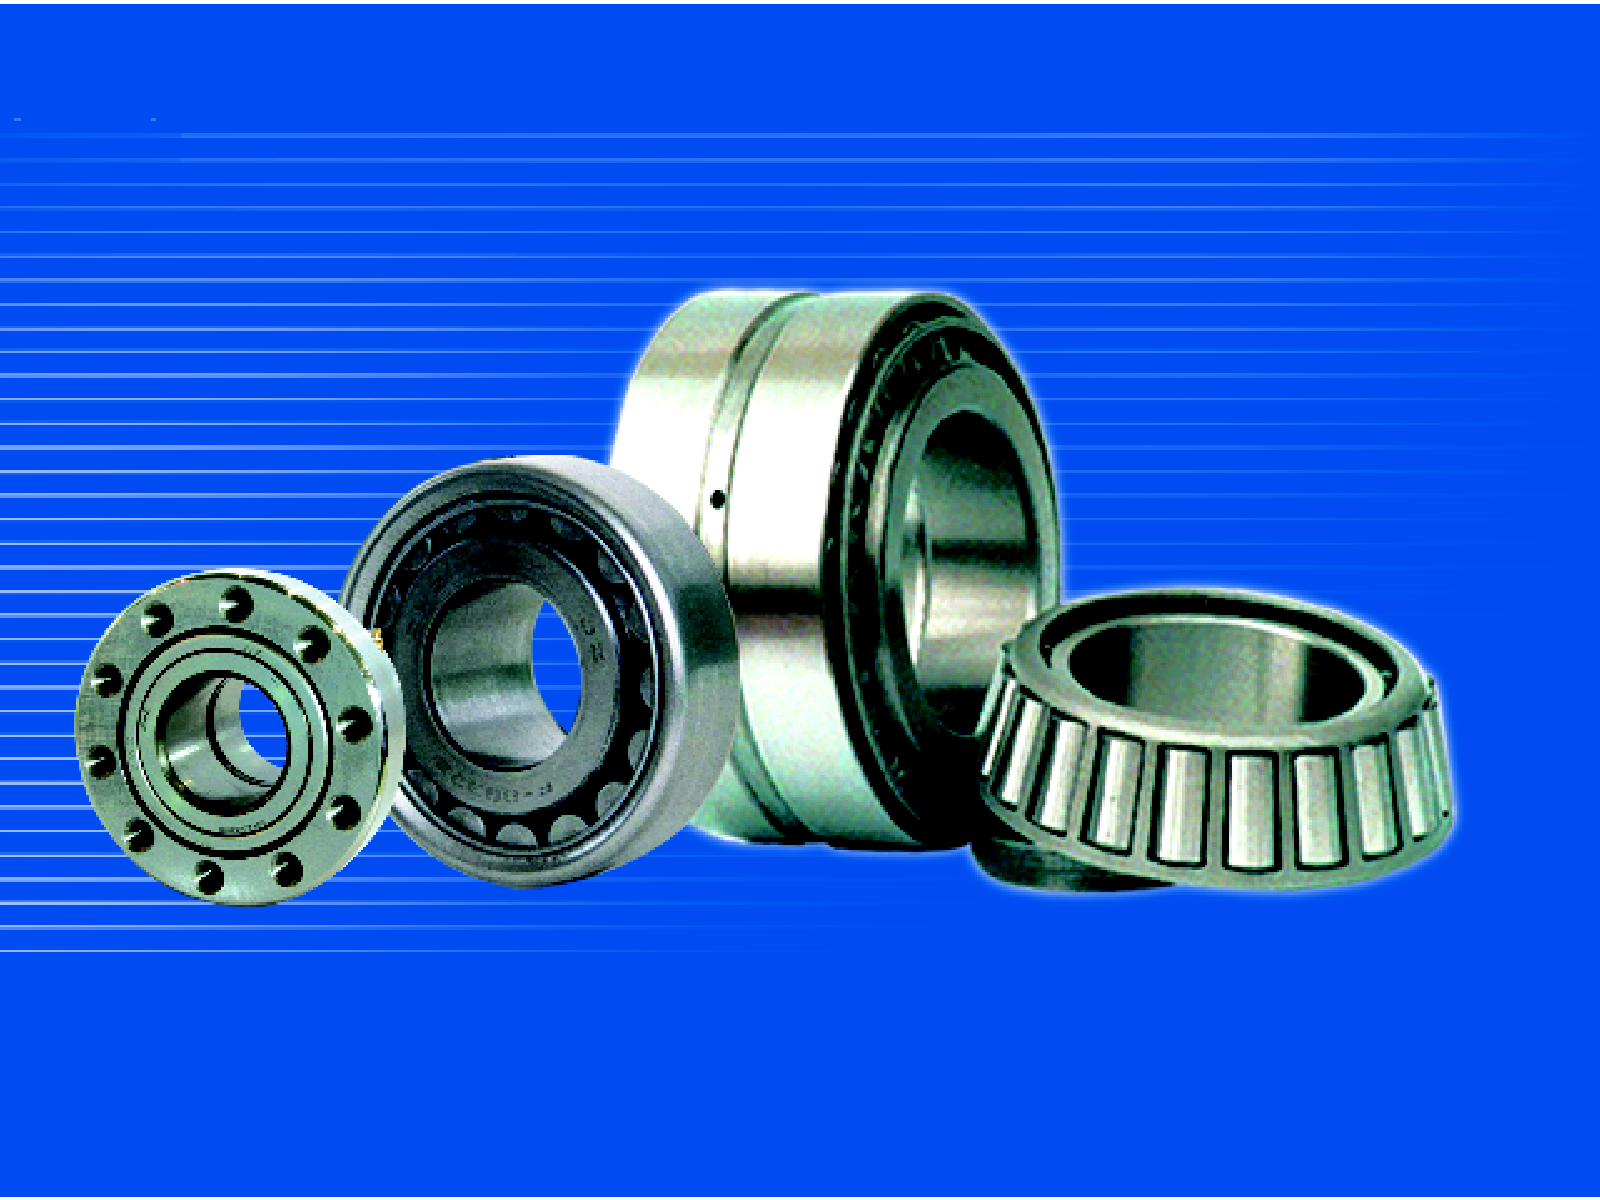 Automobile Cylindrical Roller Bearings-Single-row Cylindrical Roller Bearings